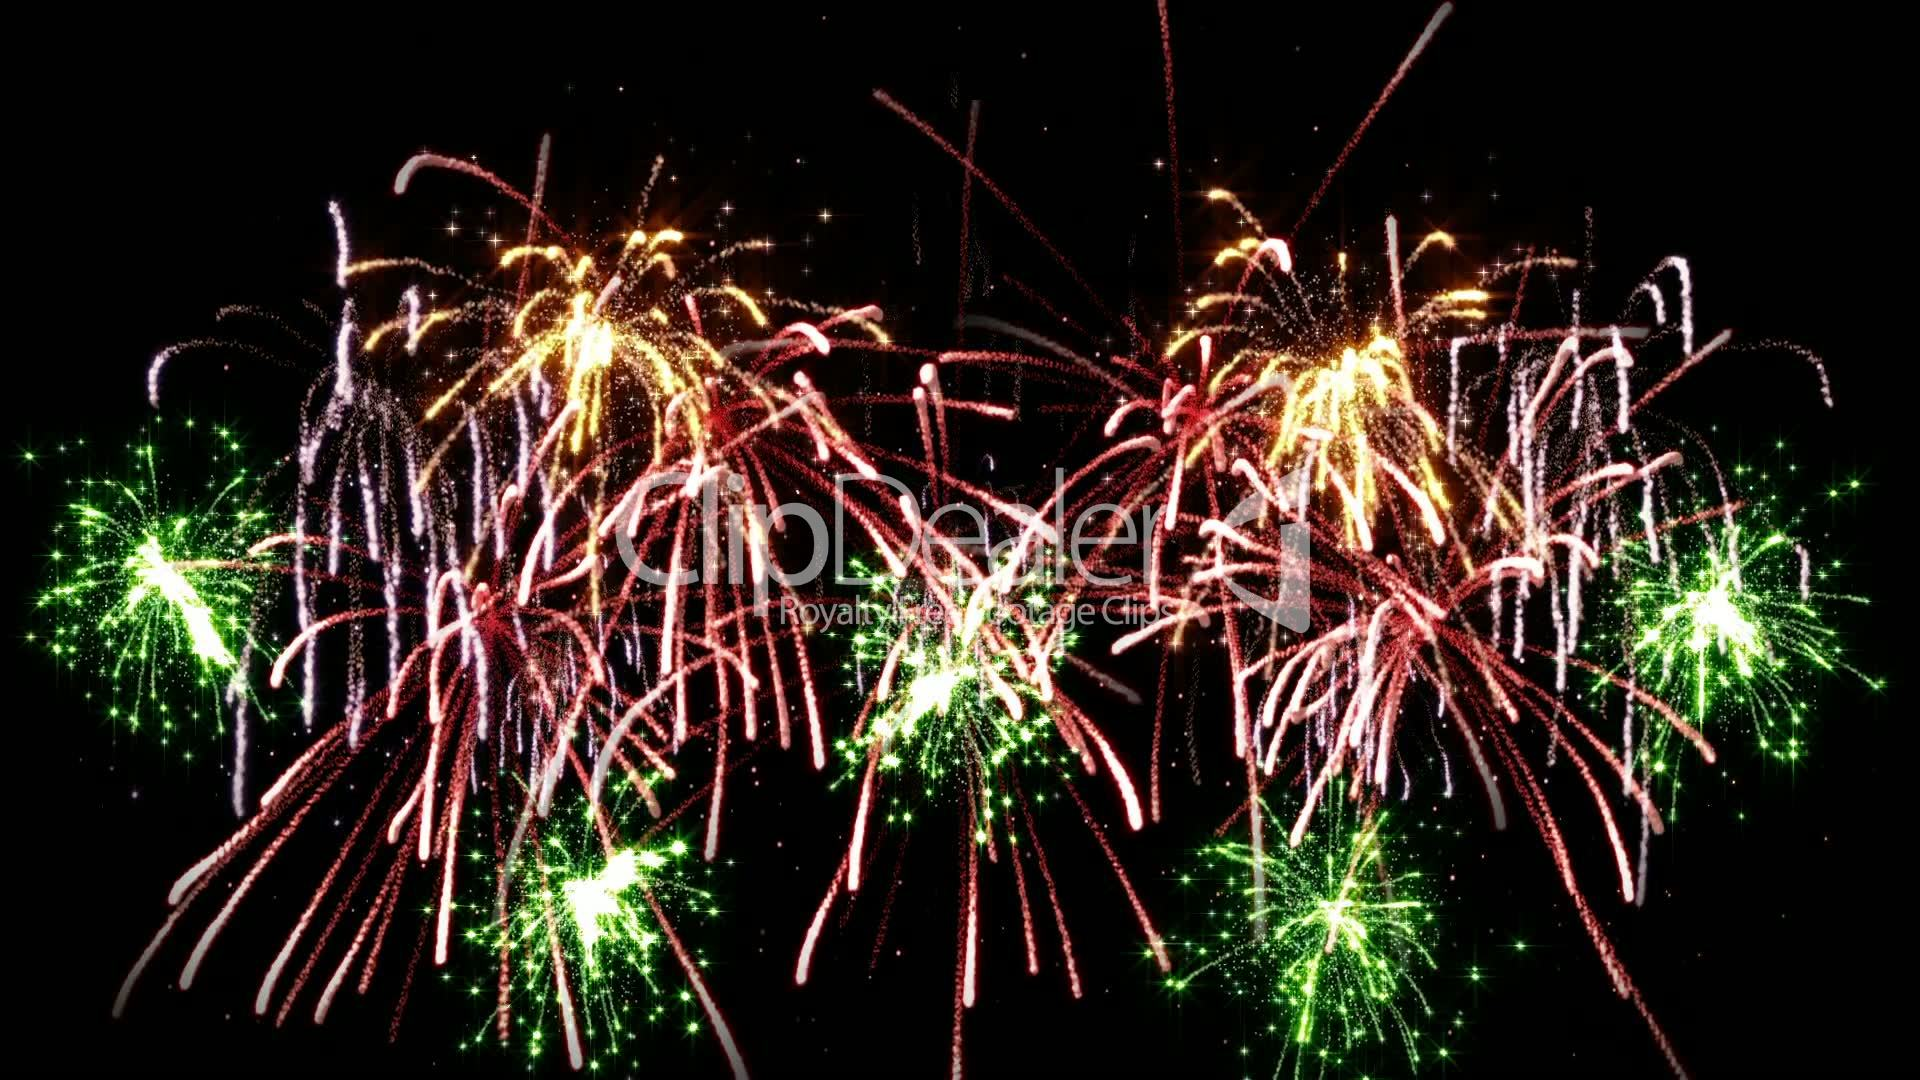 fireworks seamless loop: Royalty-free video and stock footage